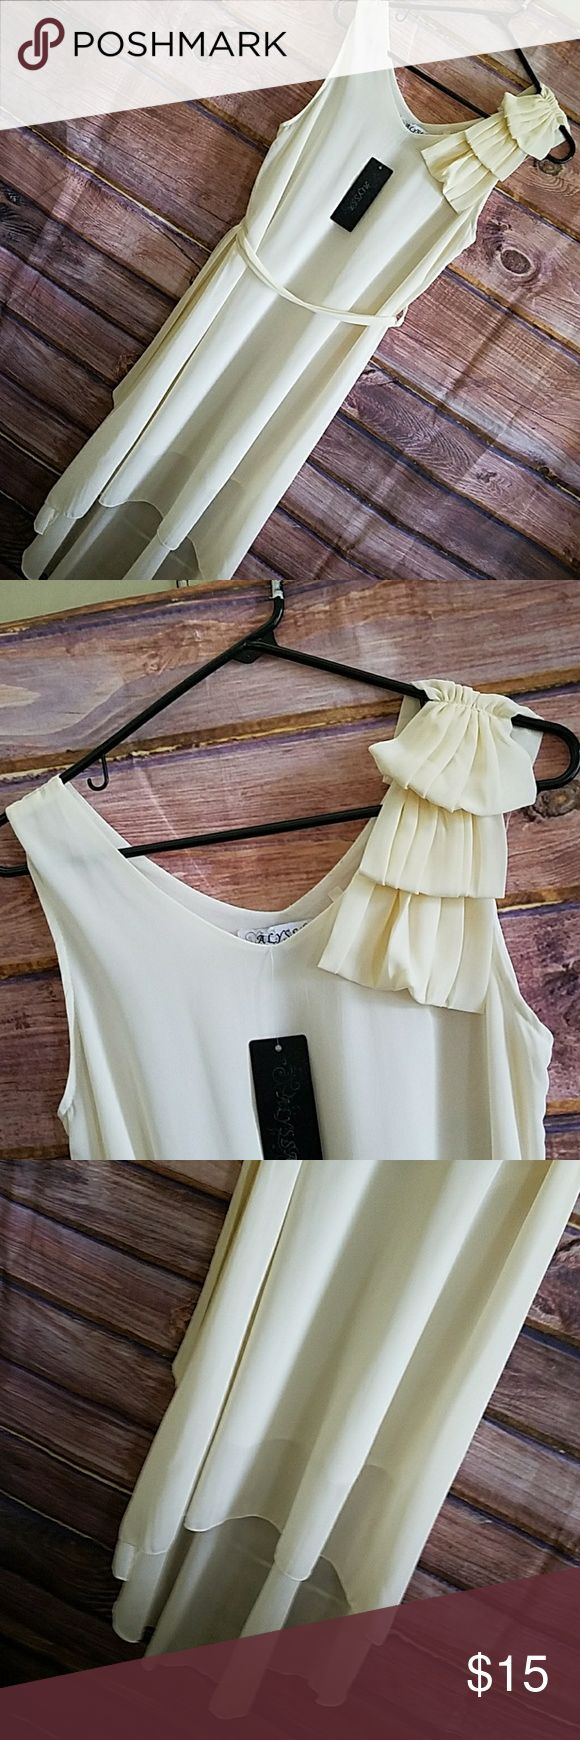 Sheer cream summer dress from Alyssa ladies small Cute summer cream-colored dress from Melissa. Ladies size small. Perfect for wedding or any other Summer Event. Alyssa Dresses Midi